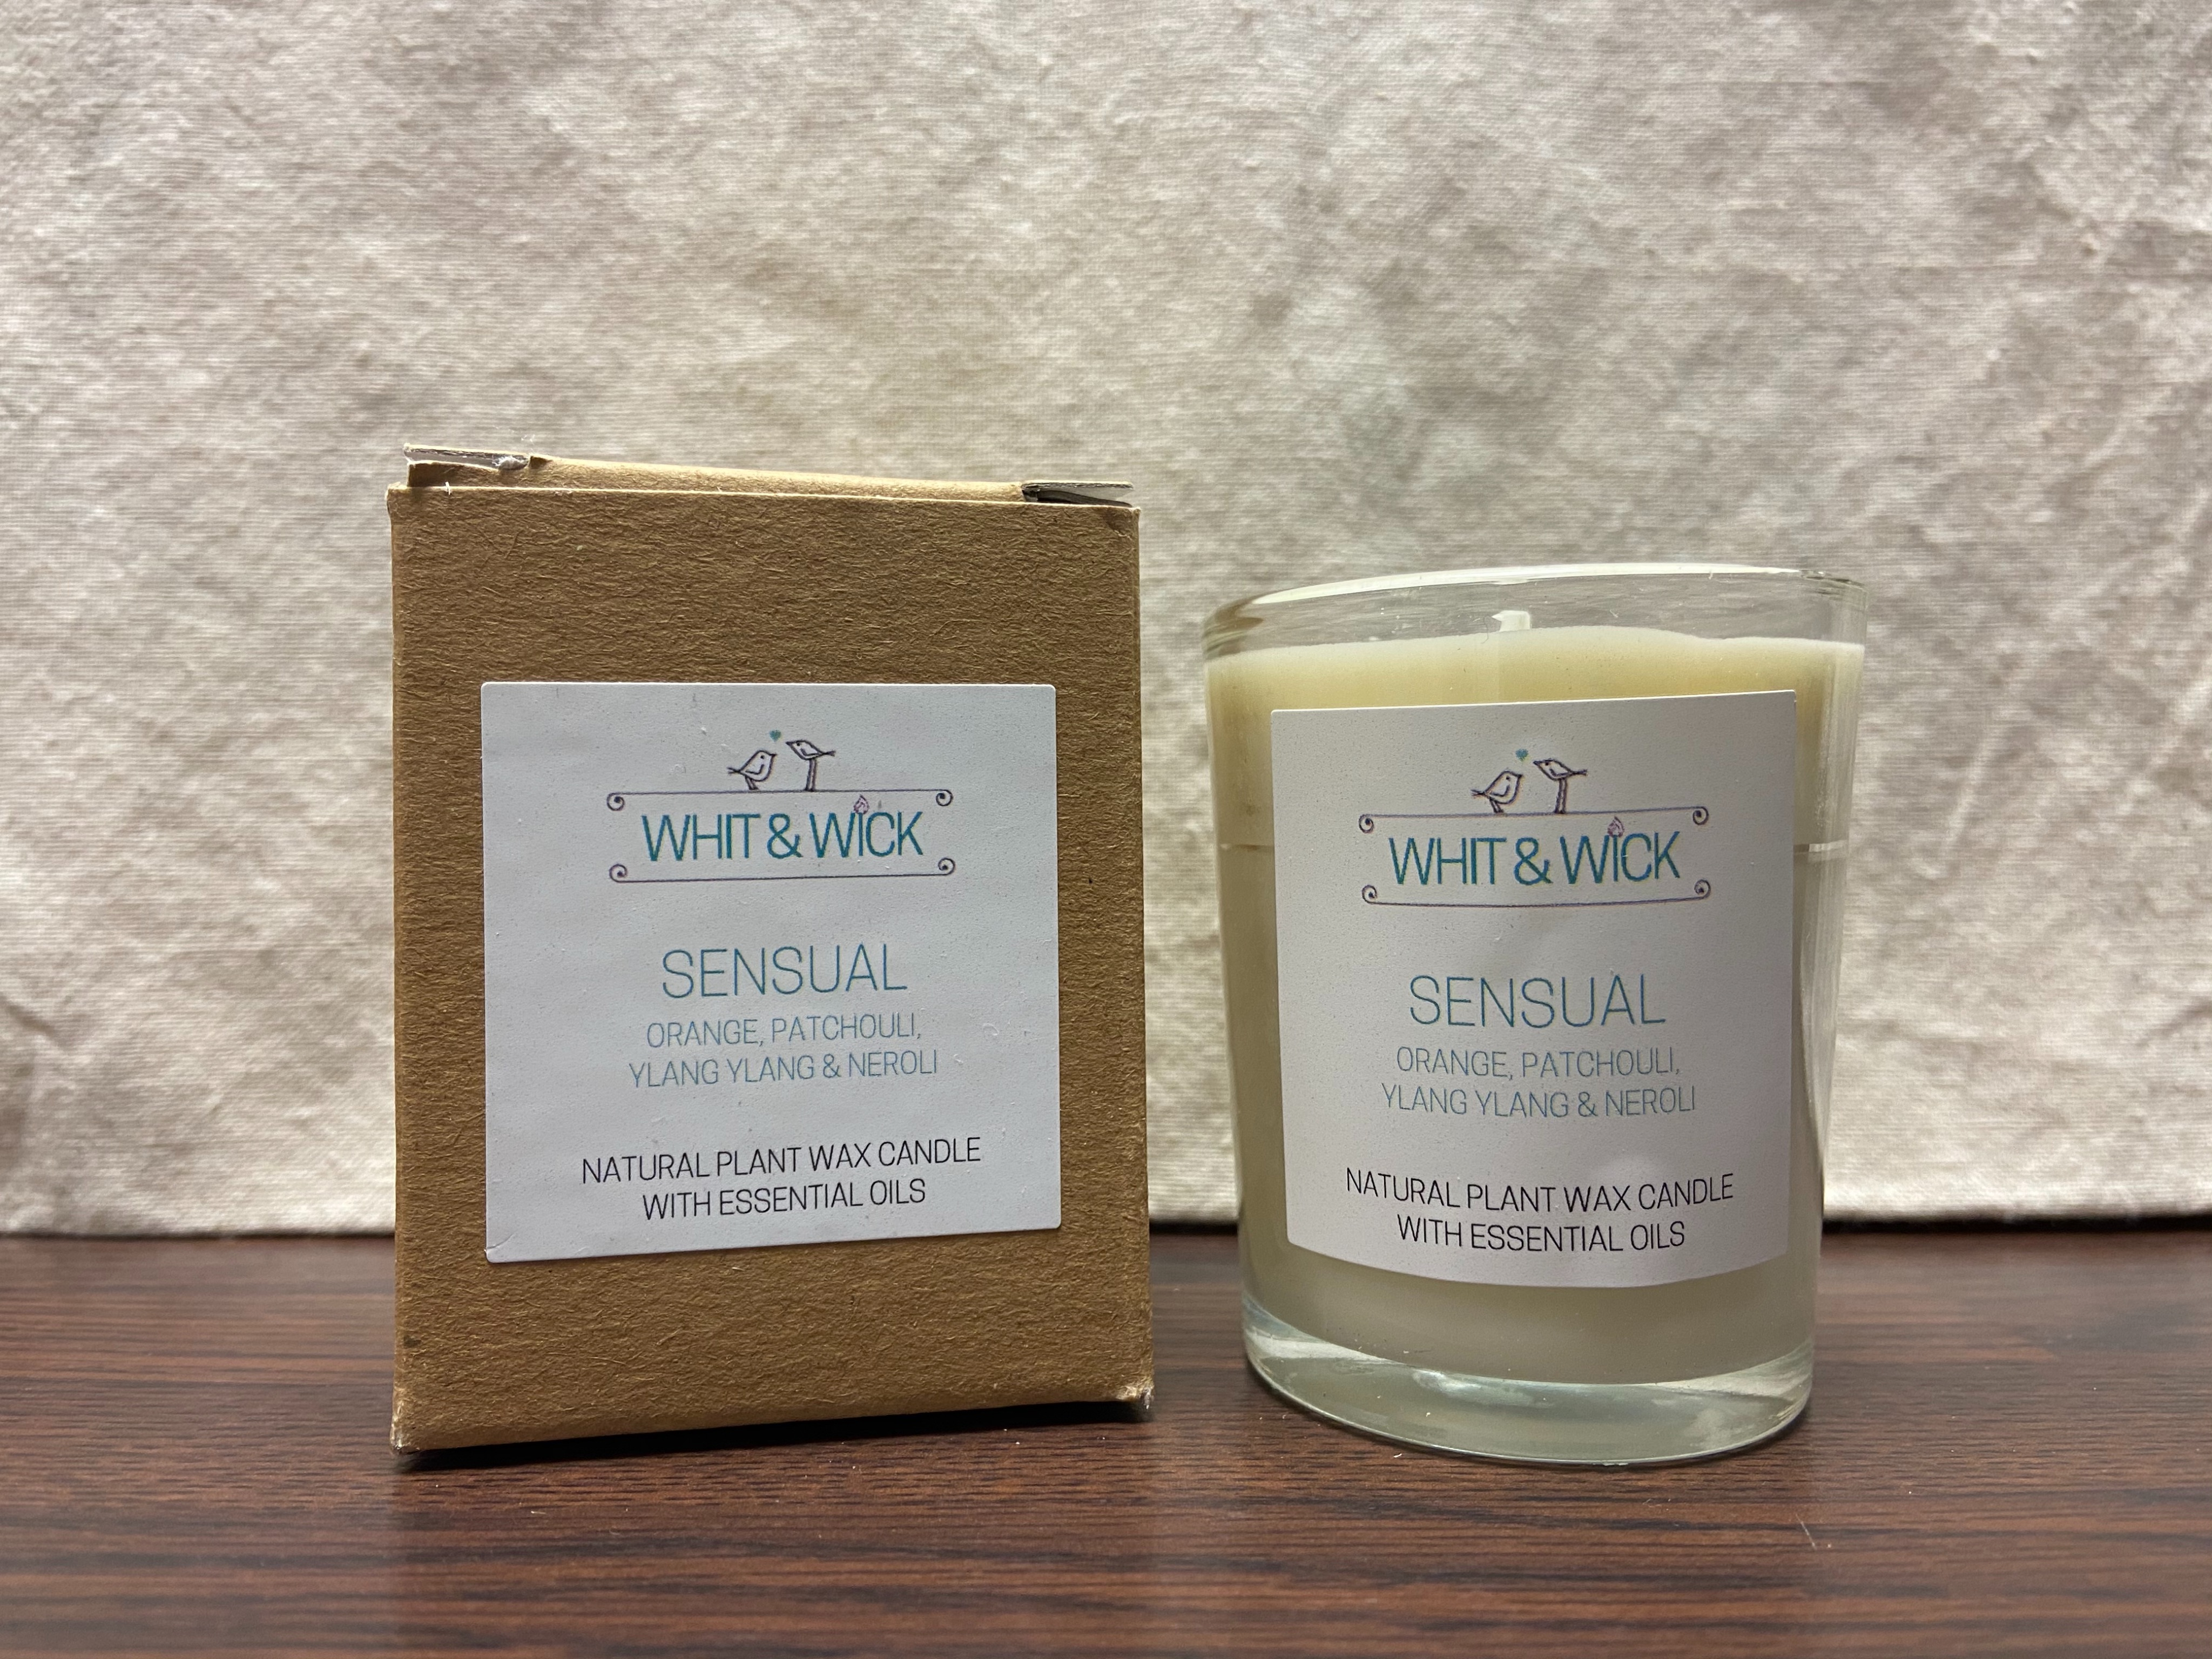 Whit & Wick Sensual Small Boxed Candle